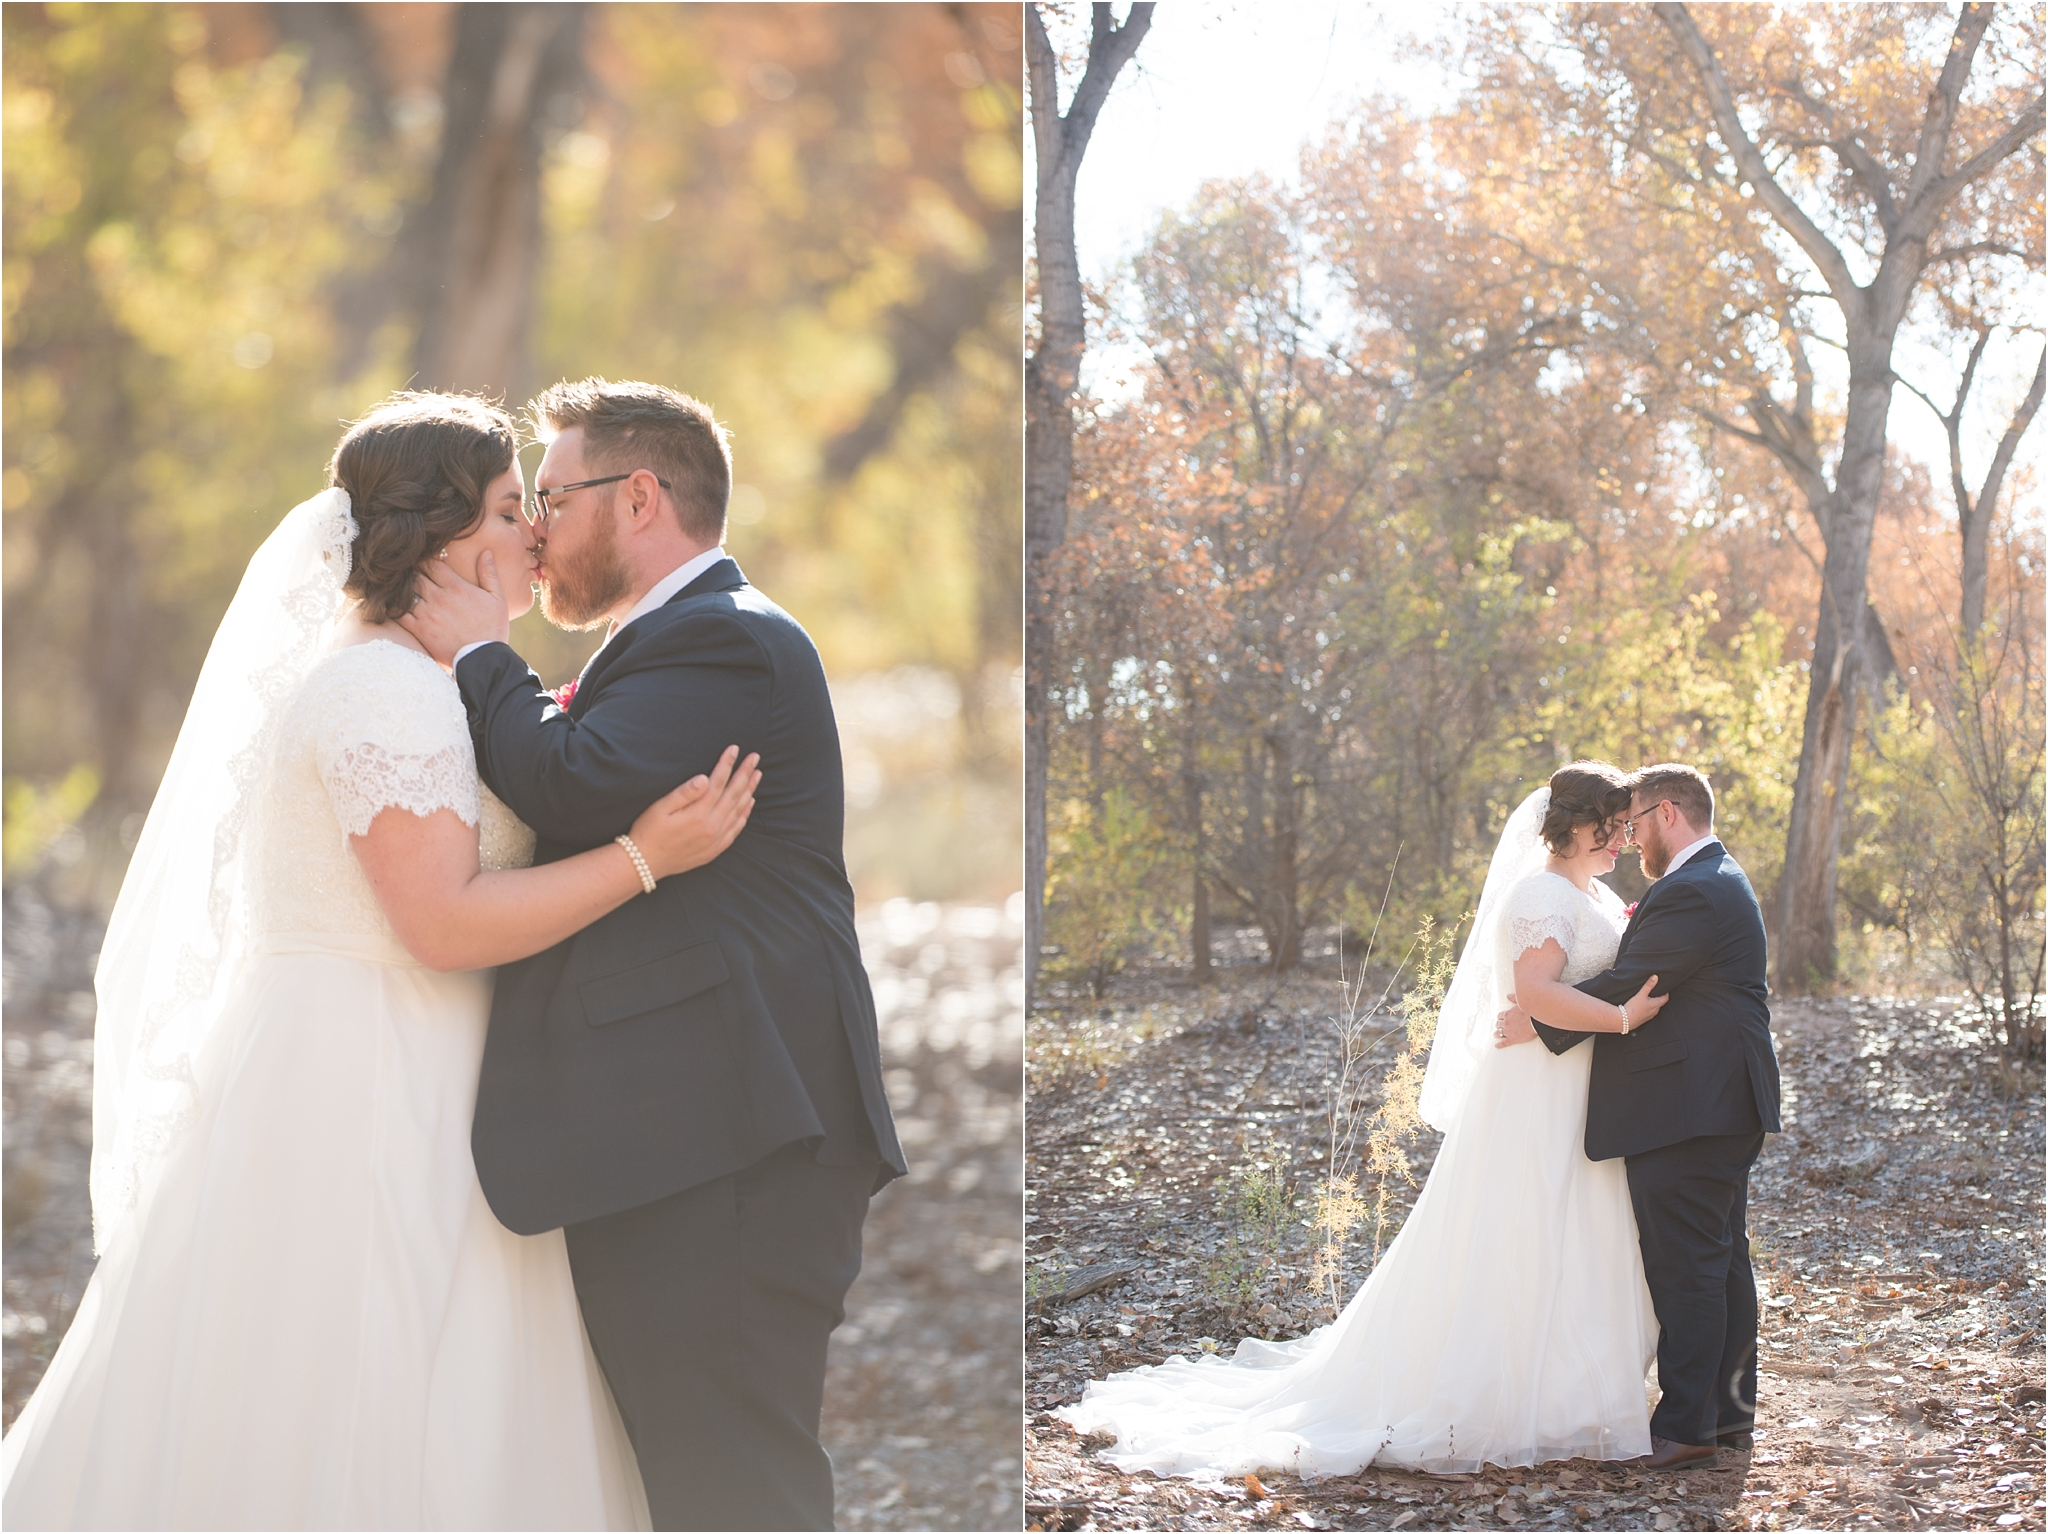 kayla kitts photography - albuquerque wedding photographer - new mexico wedding photographer - desination wedding photographer - cabo wedding photographer_0021.jpg